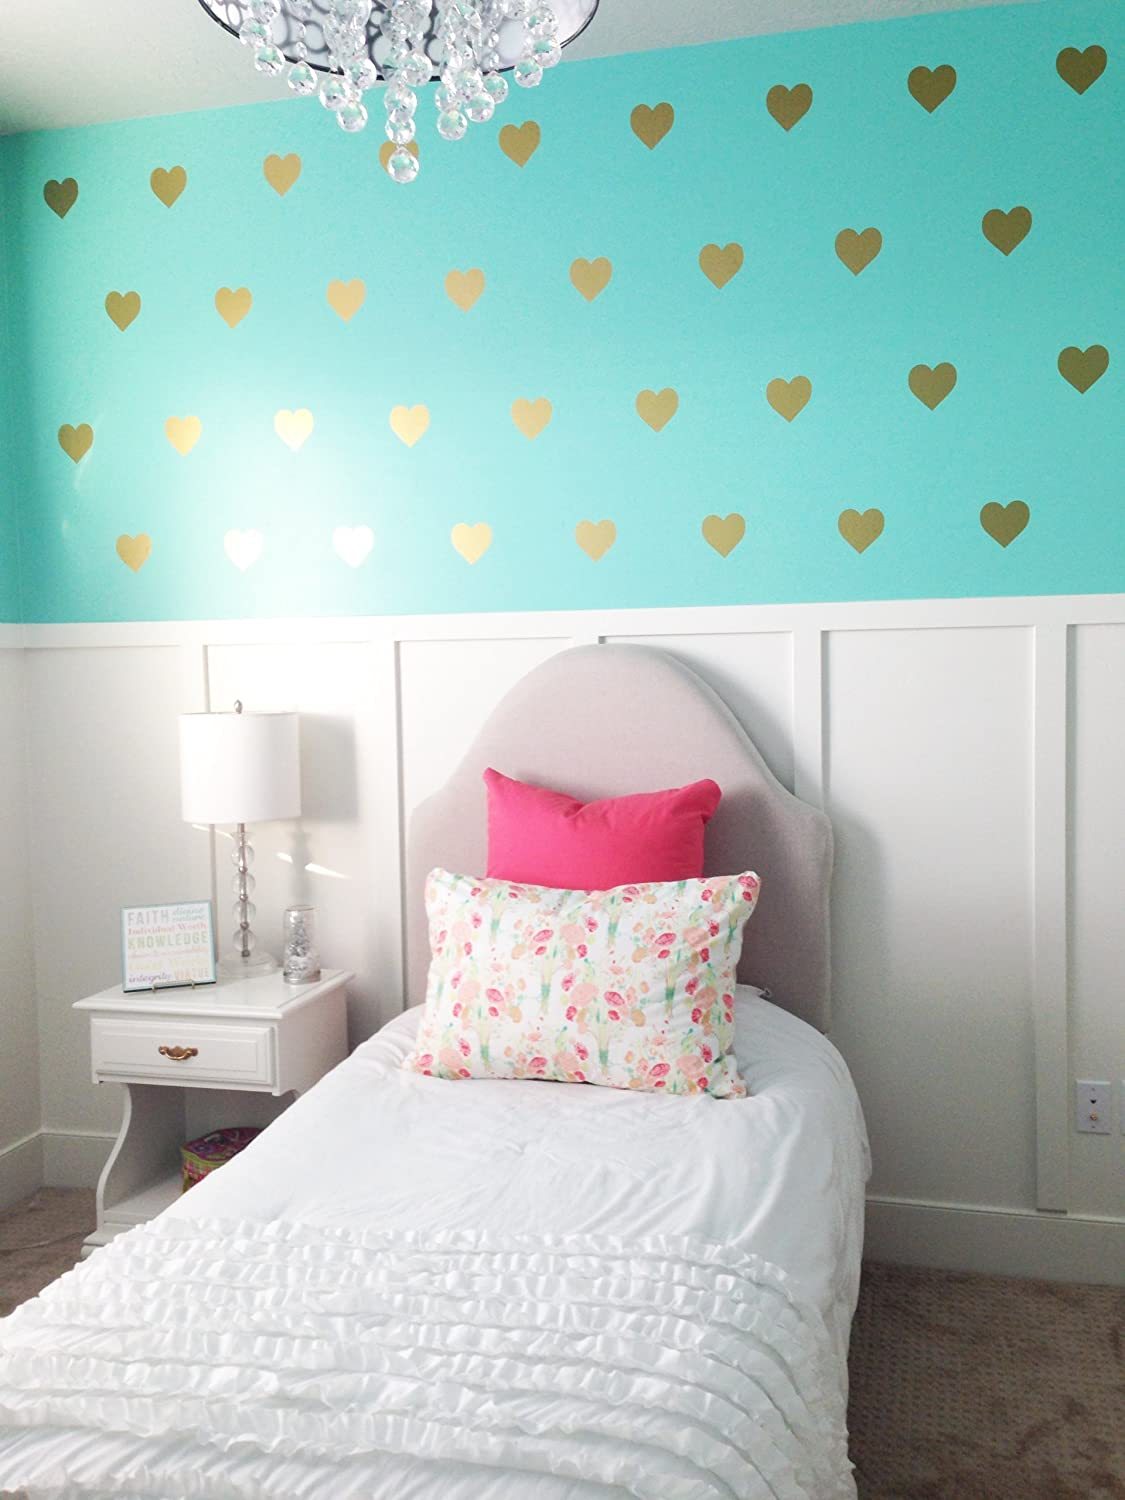 "Amazon.com: Vinyl Wall Decals Removable Wall Stickers Hearts (Gold, 3""):  Home & Kitchen"